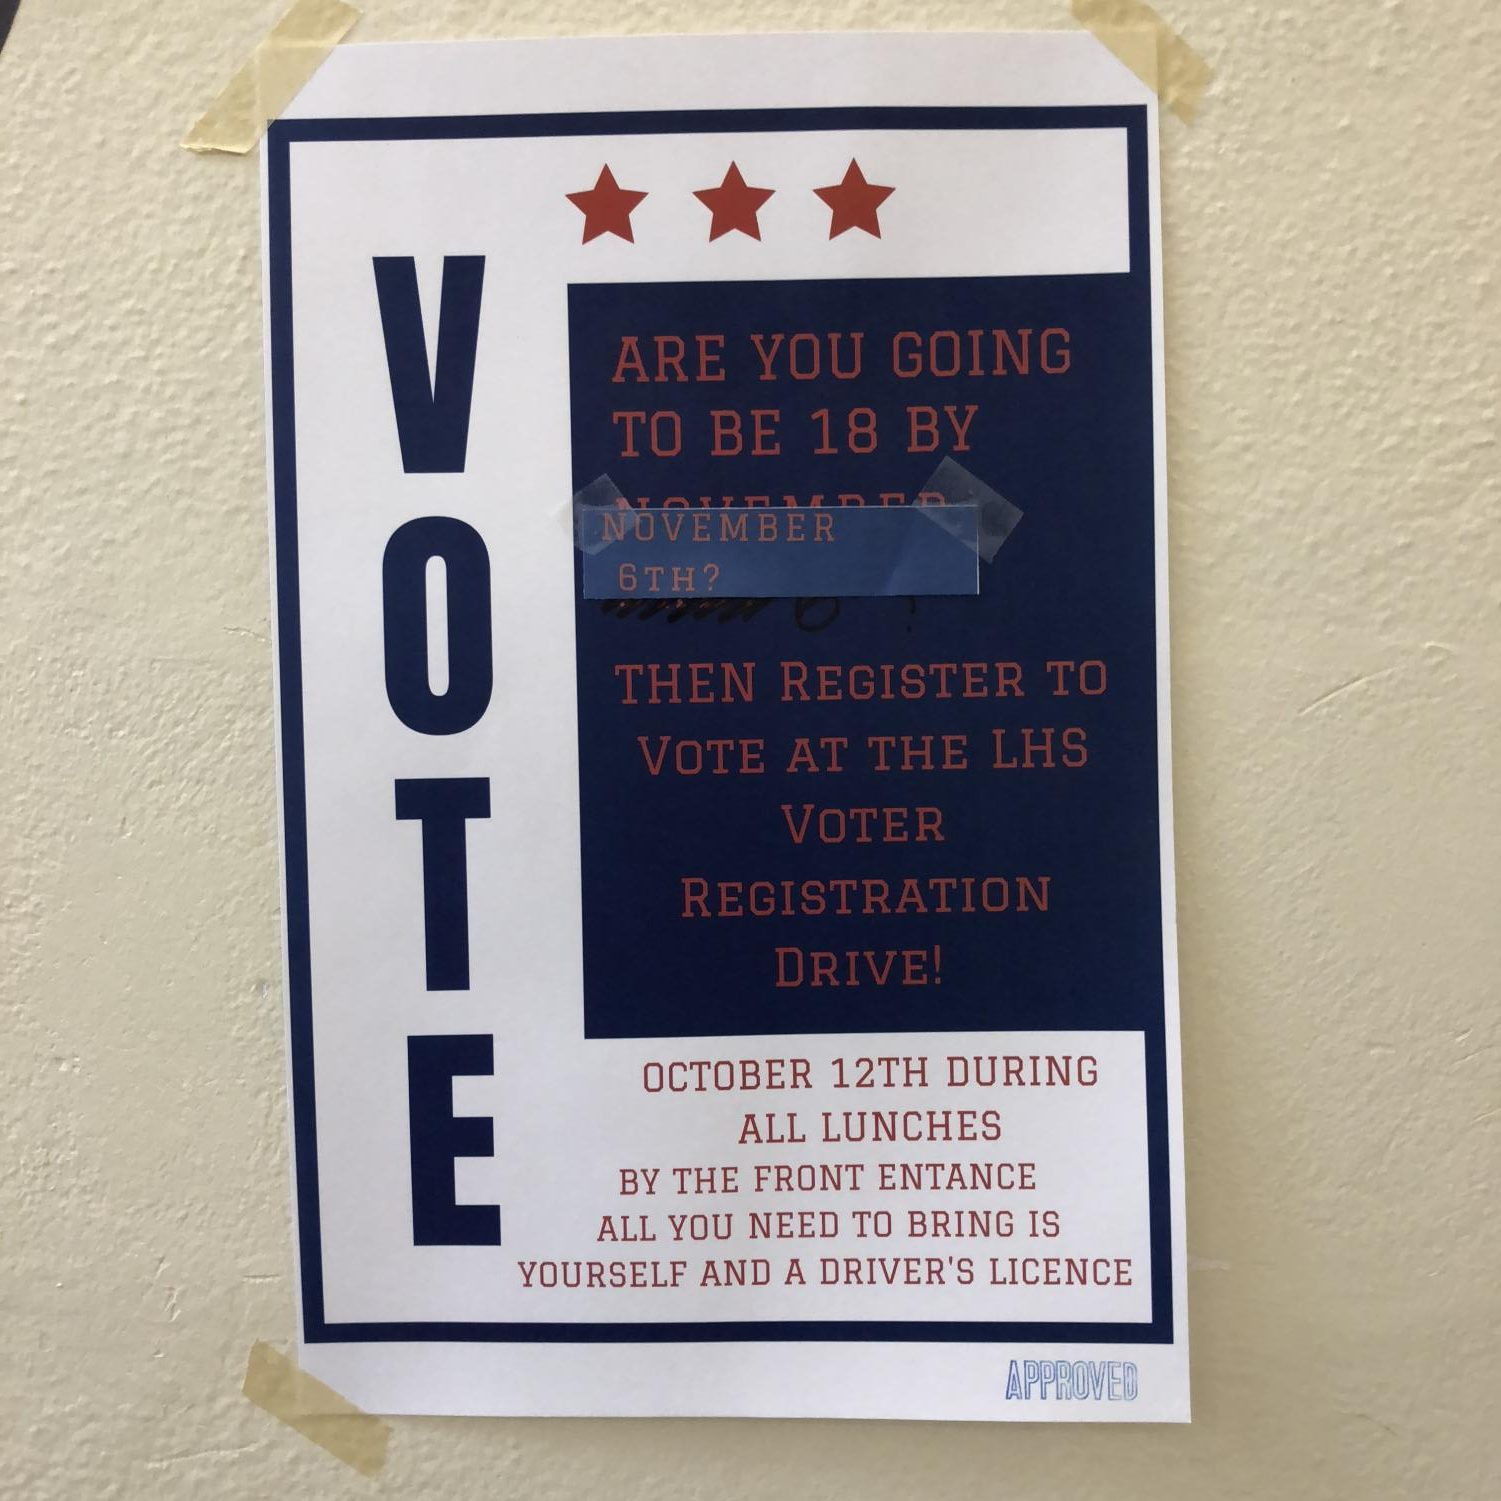 Lincoln High Young Democrats will host a voter registration drive this Friday, Oct. 12, 2018 during all lunches in the main entrance hallway on first floor.